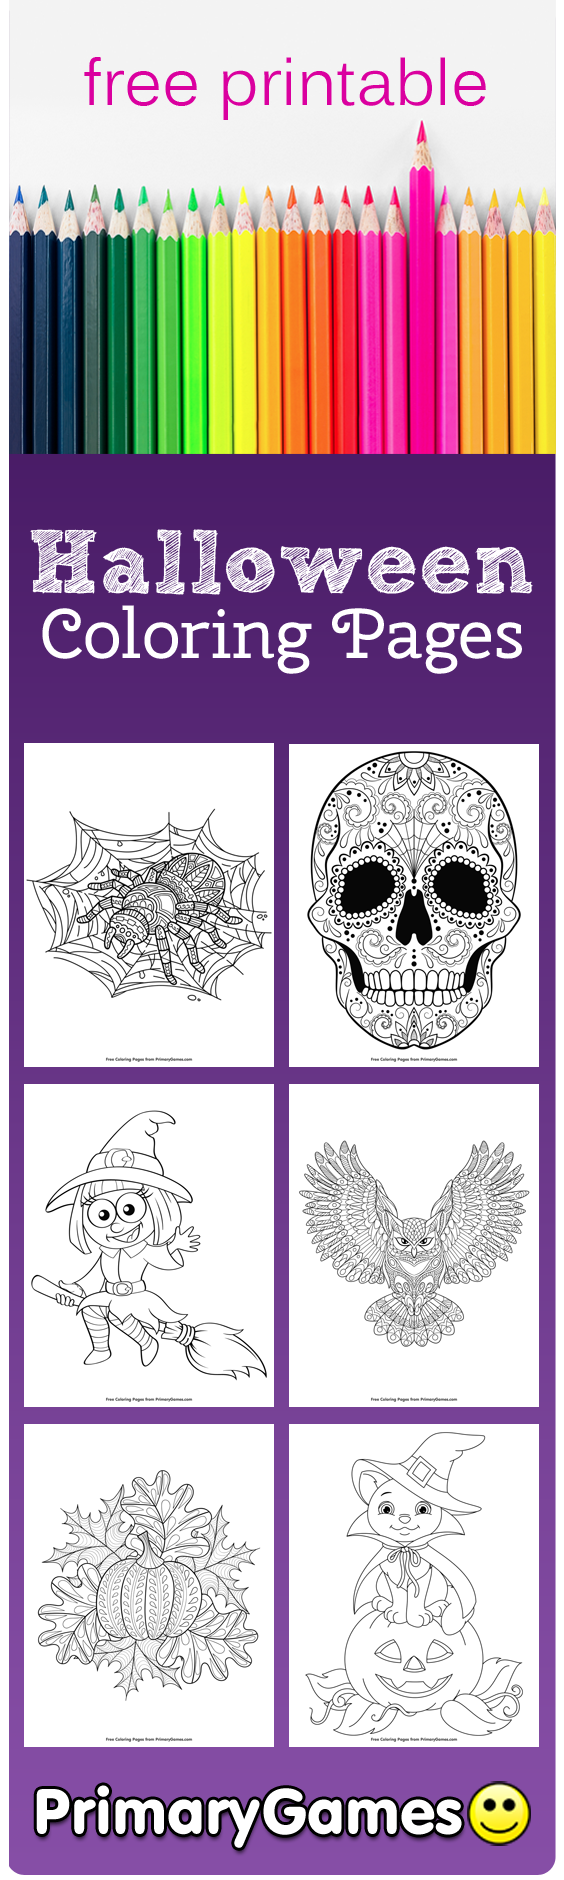 halloween coloring pages primarygames play free online games